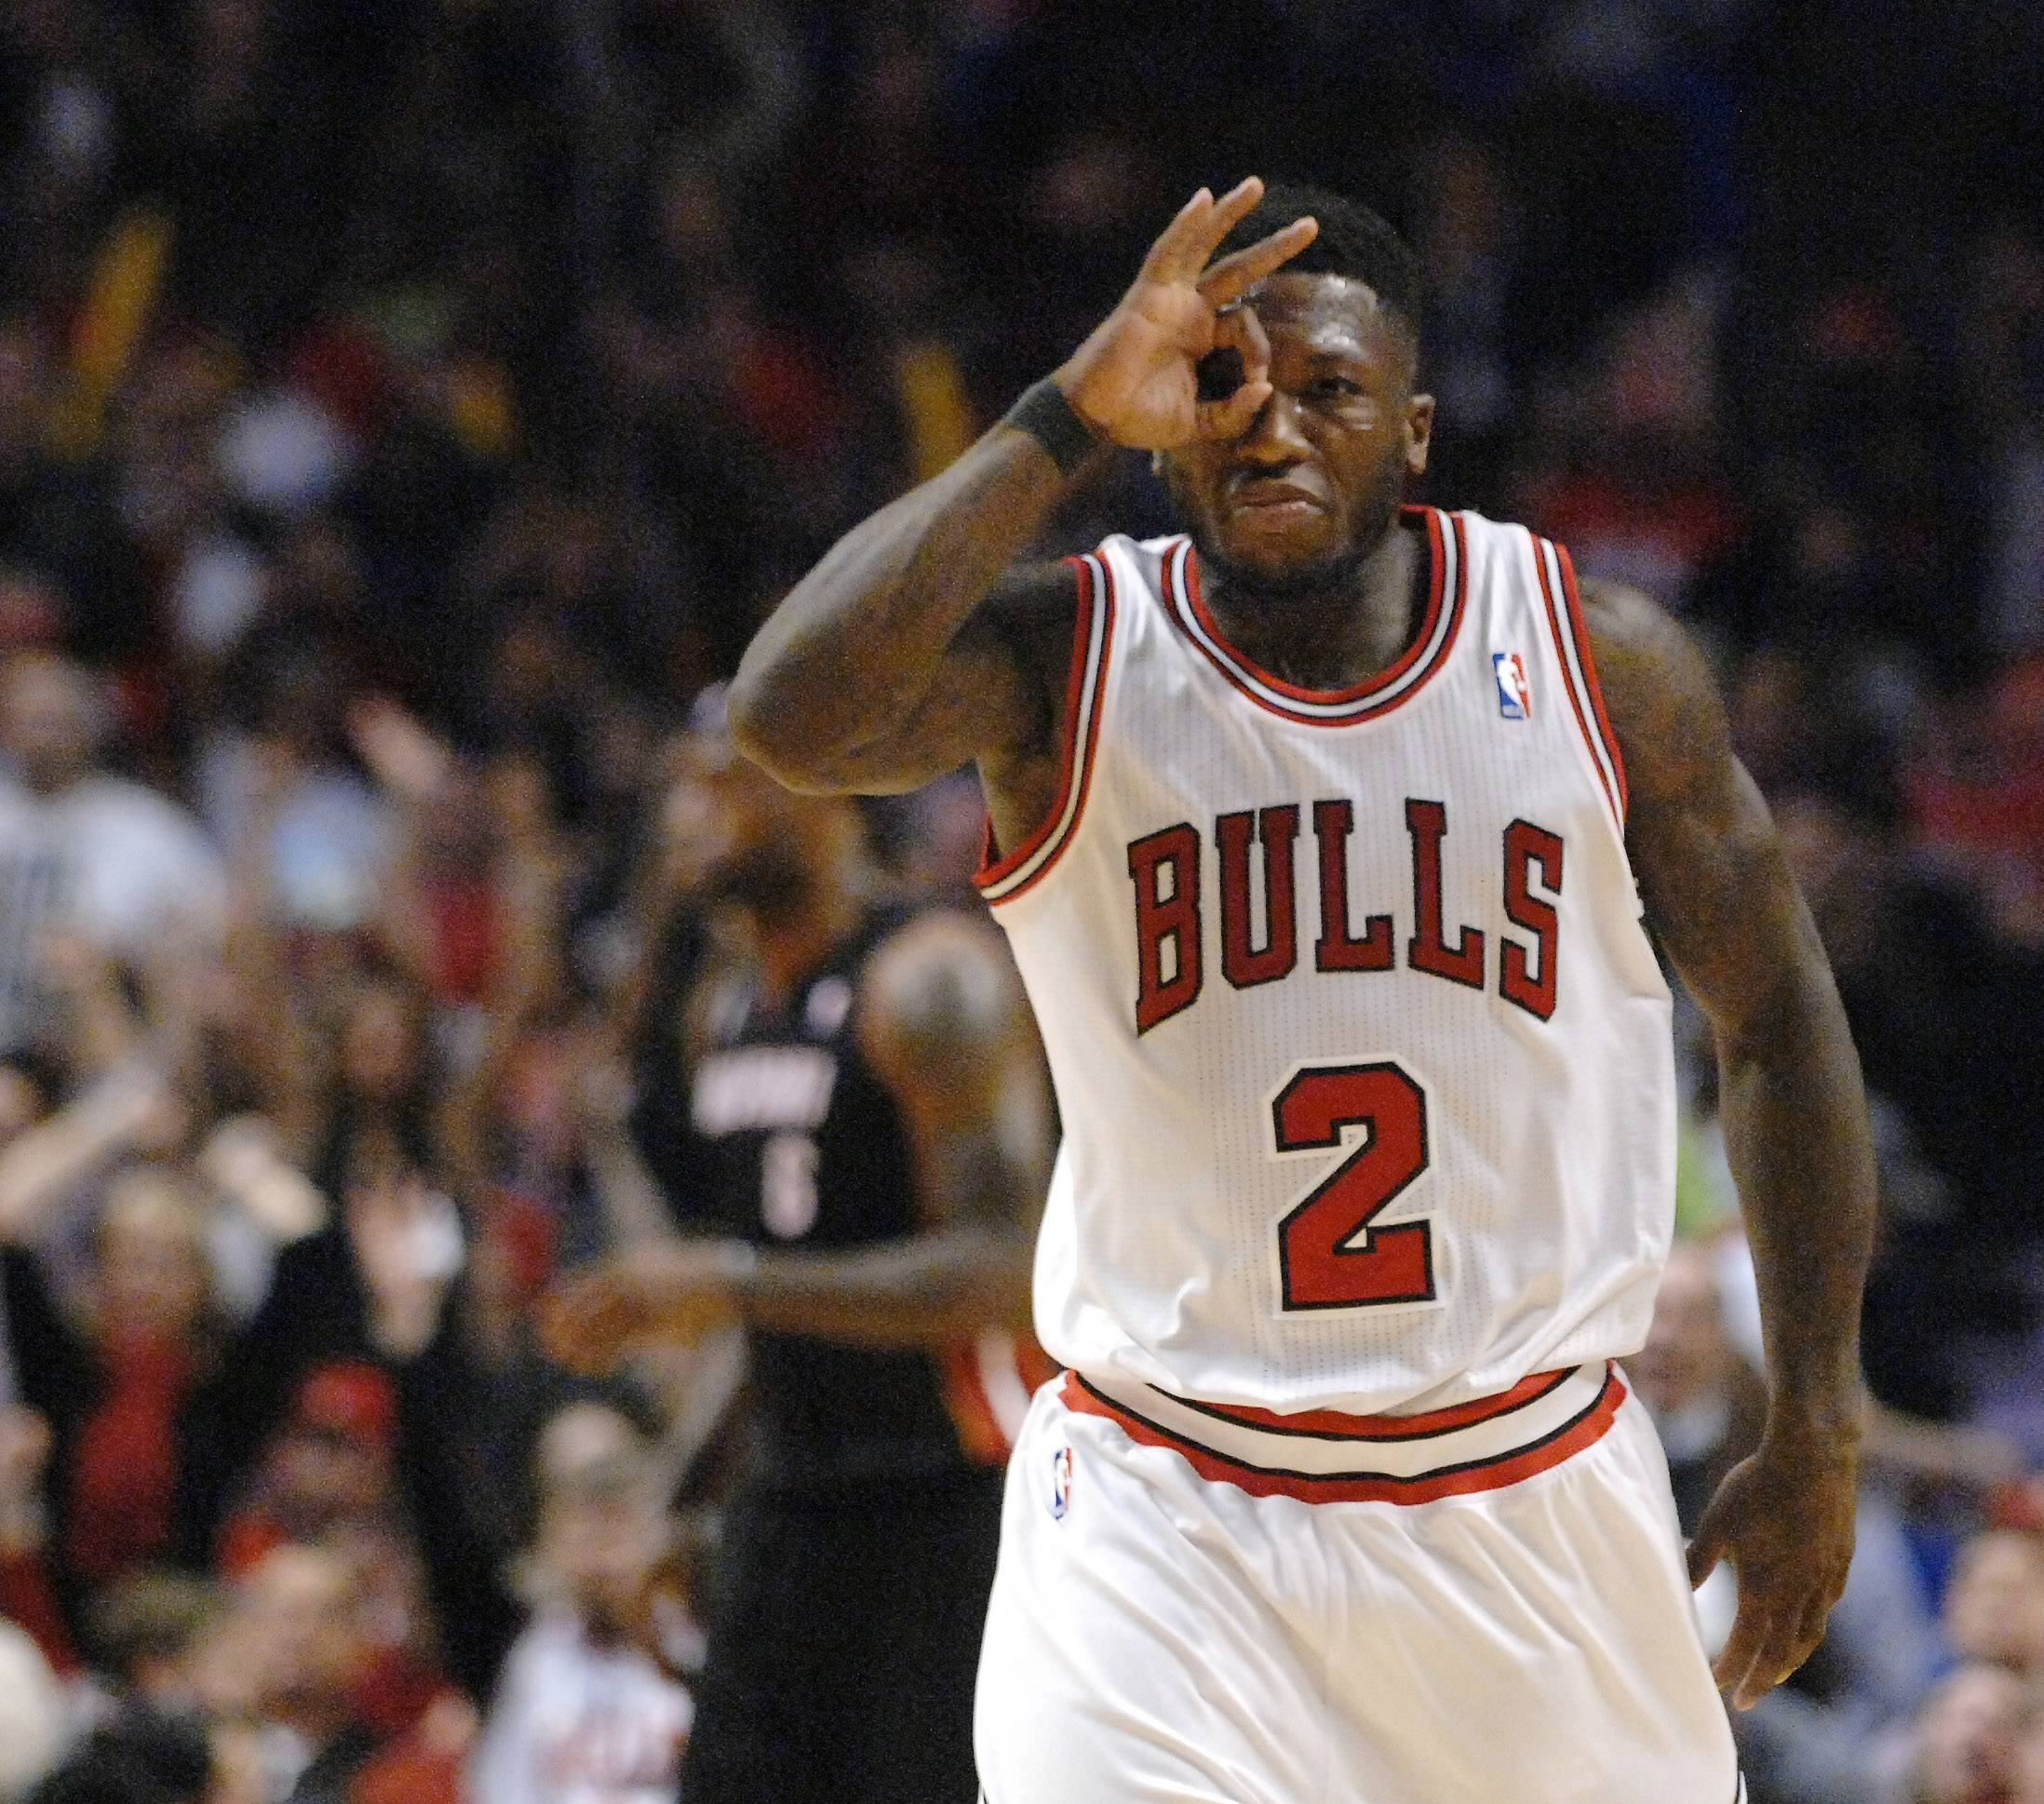 Chicago Bulls point guard Nate Robinson (2) celebrates a three-pointer  during Game 3 of an NBA basketball playoffs Eastern Conference semifinal on Friday, May 10, 2013, in Chicago. The heat won 104-94.